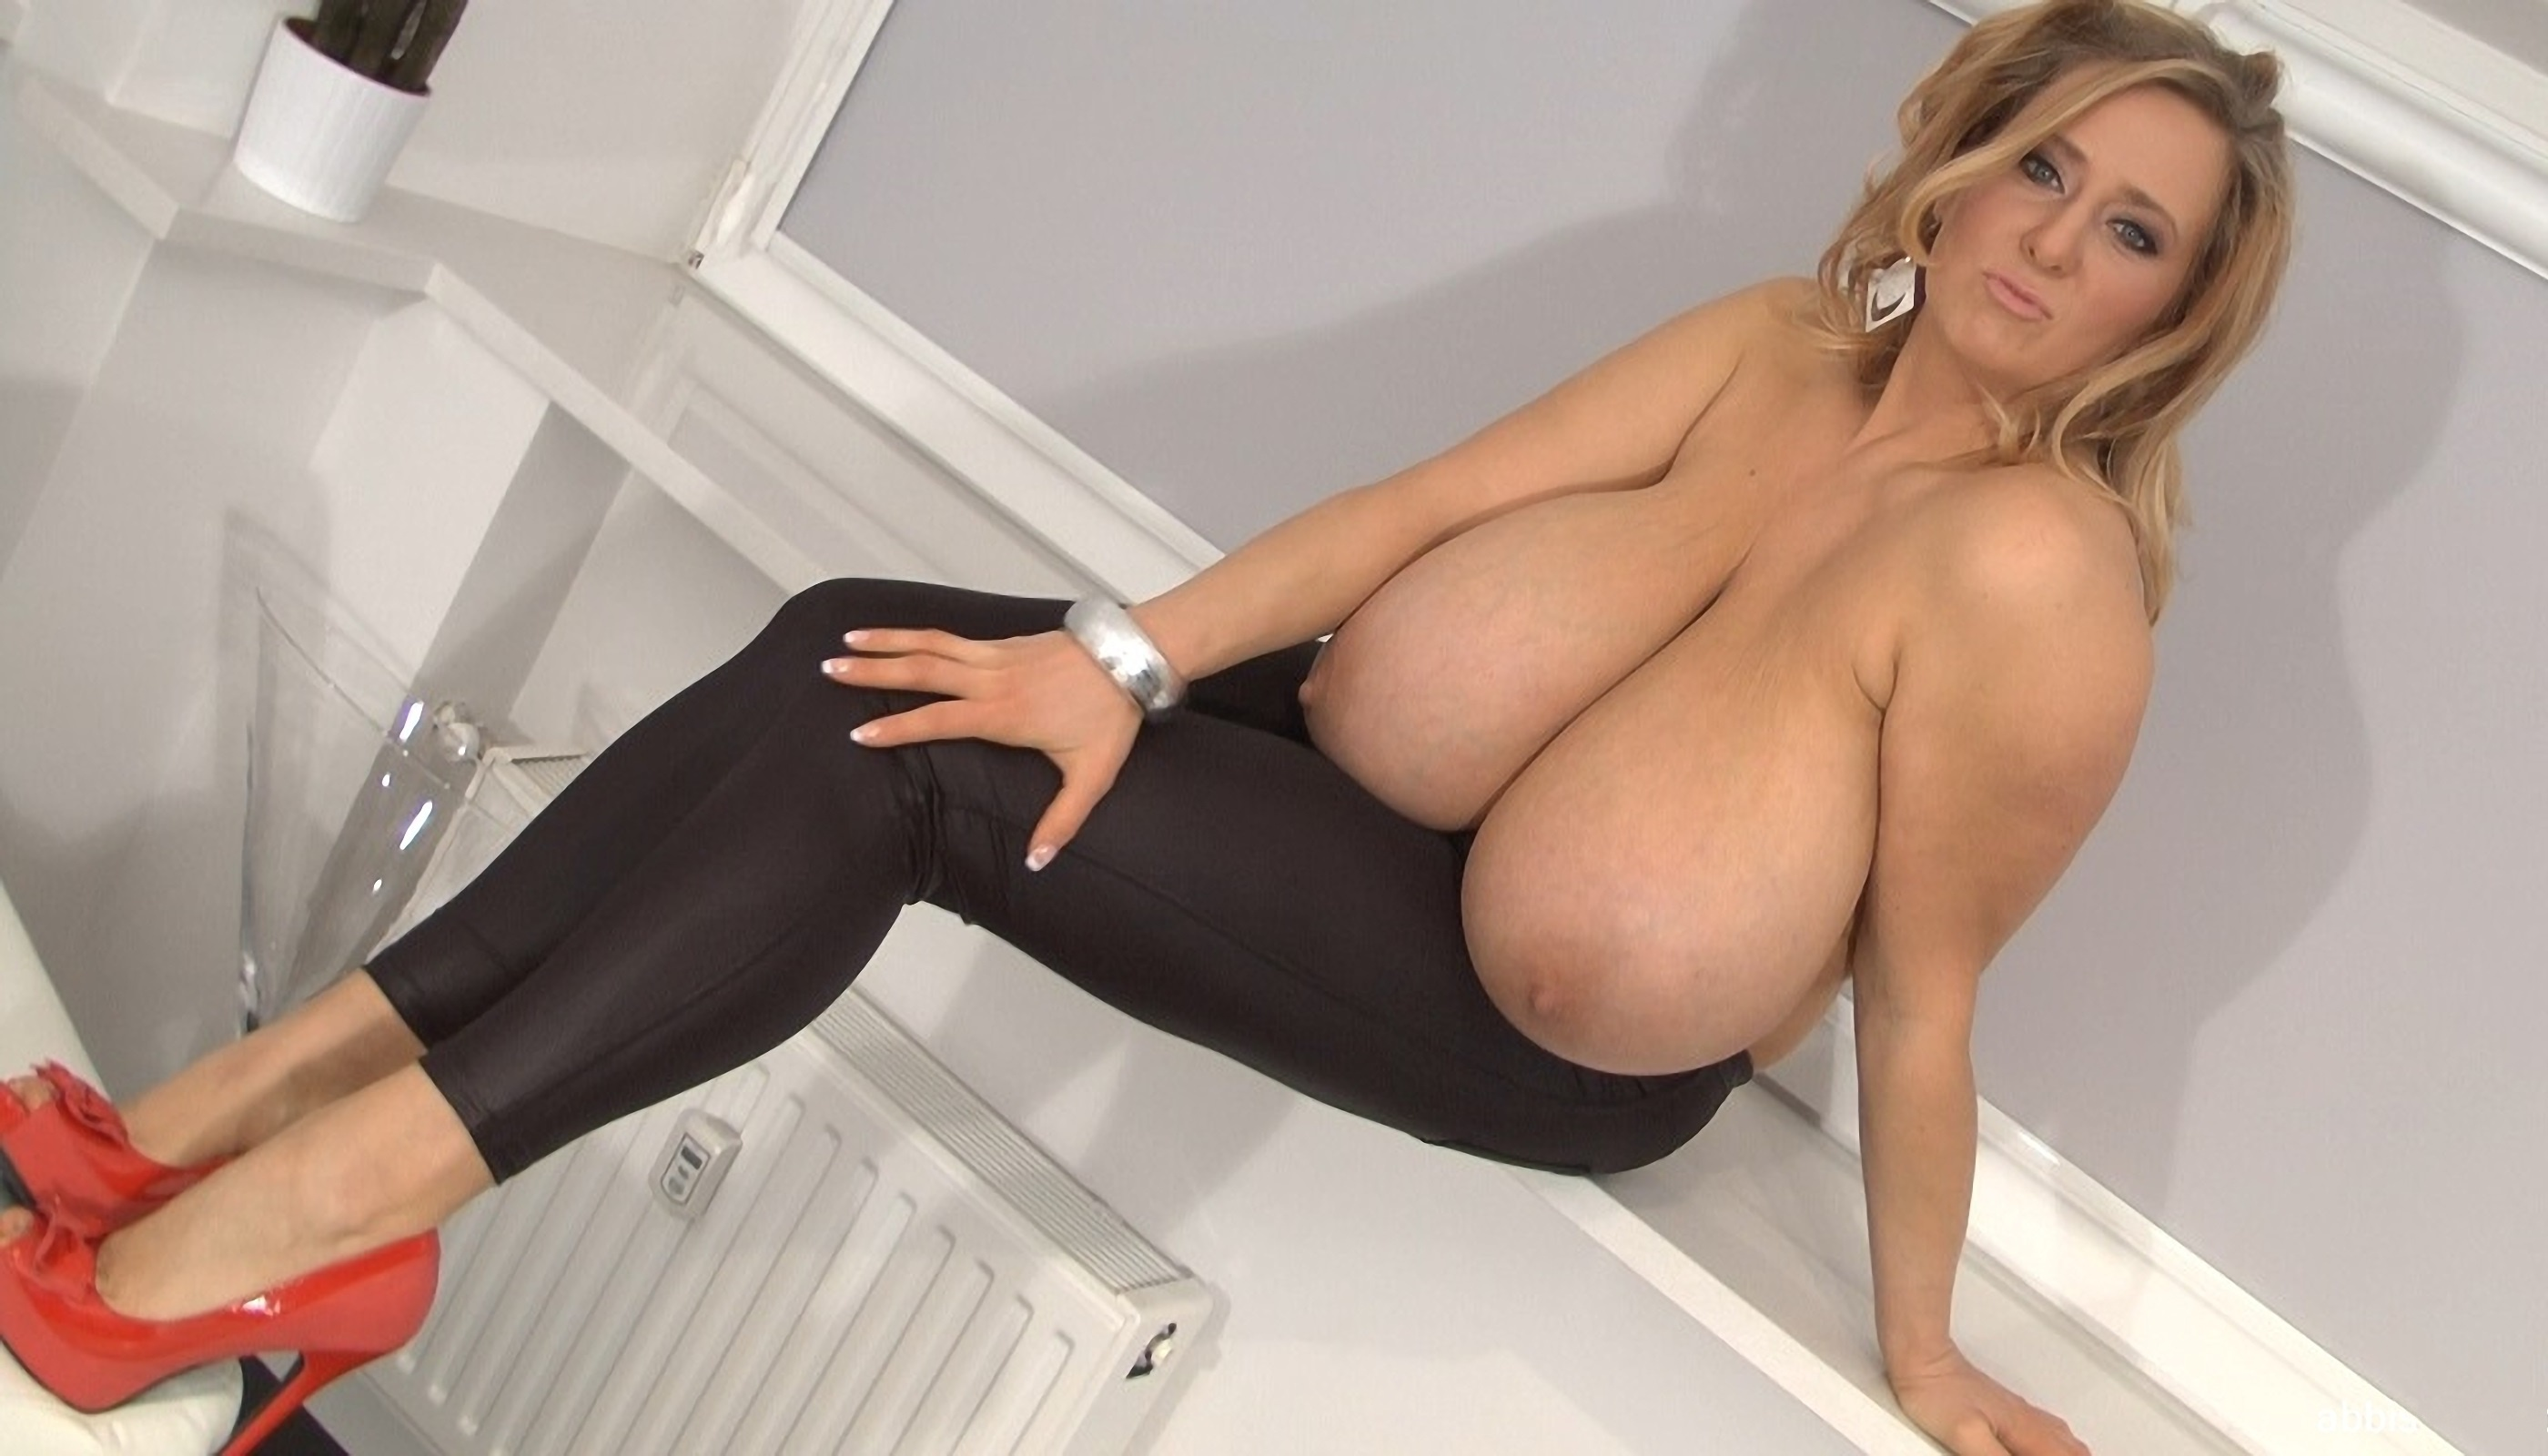 Enormous heavy tits all on a fairly slim frame wow